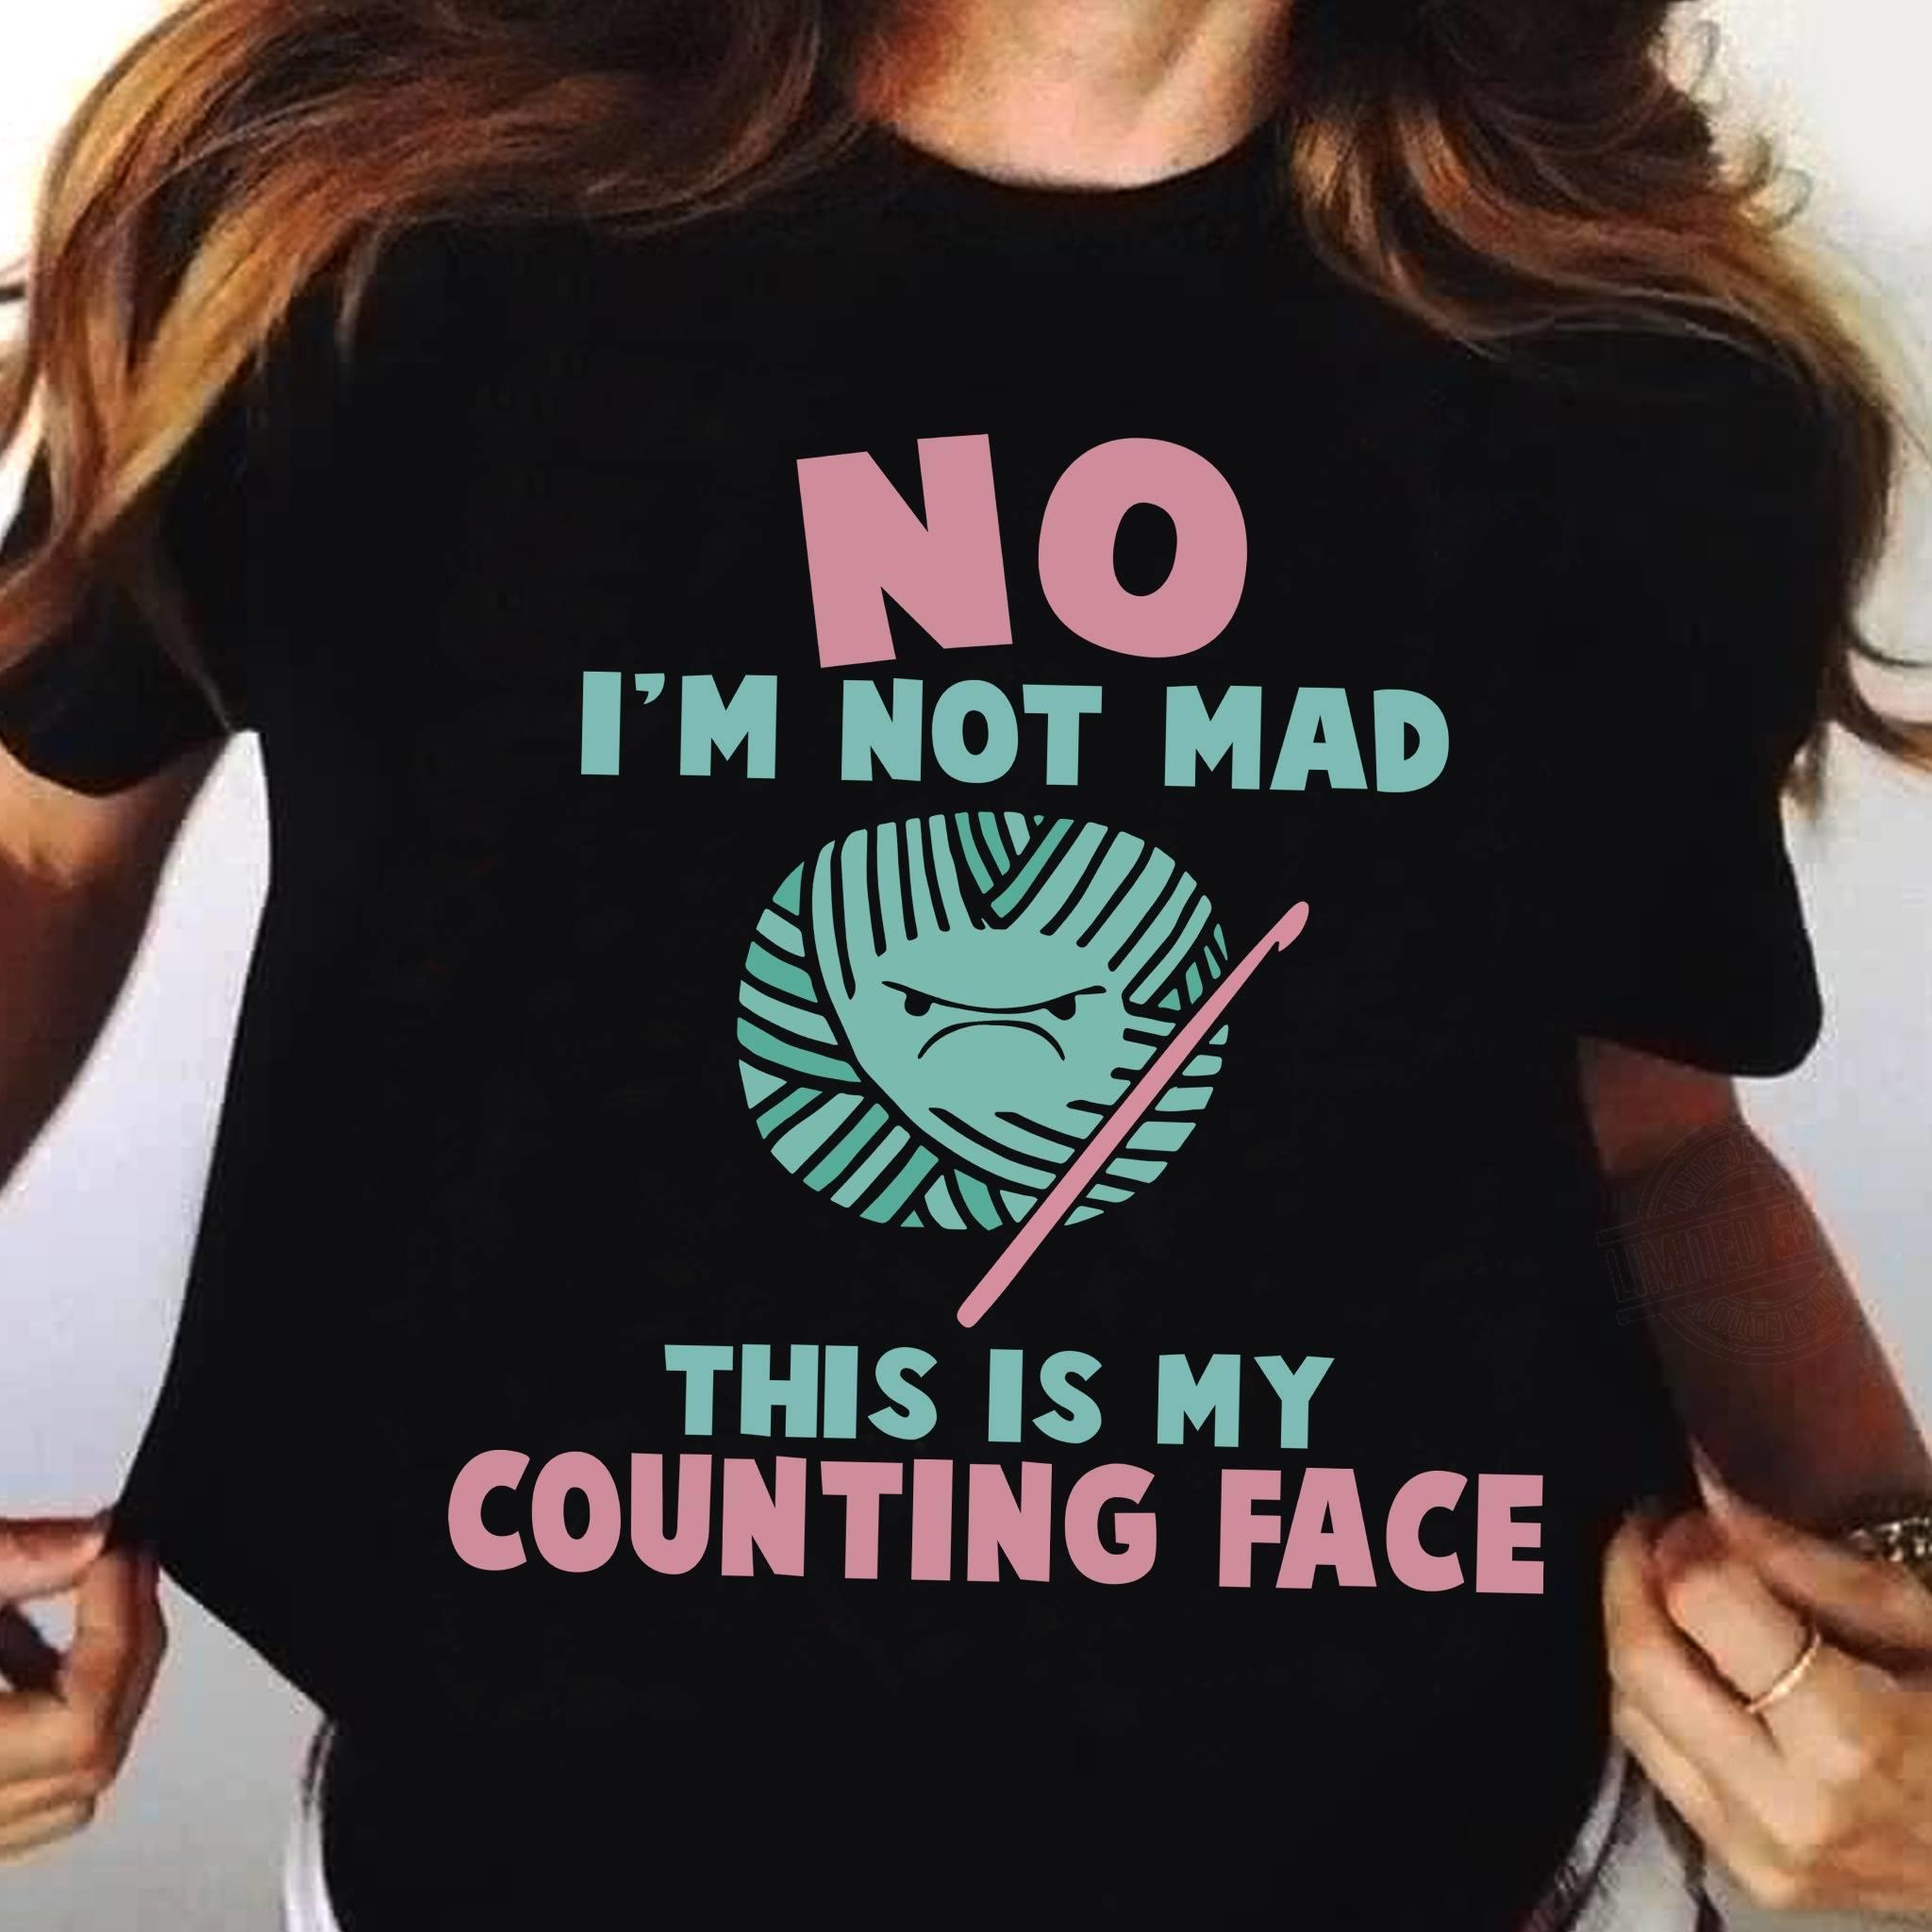 Crochet Counting Face Shirt